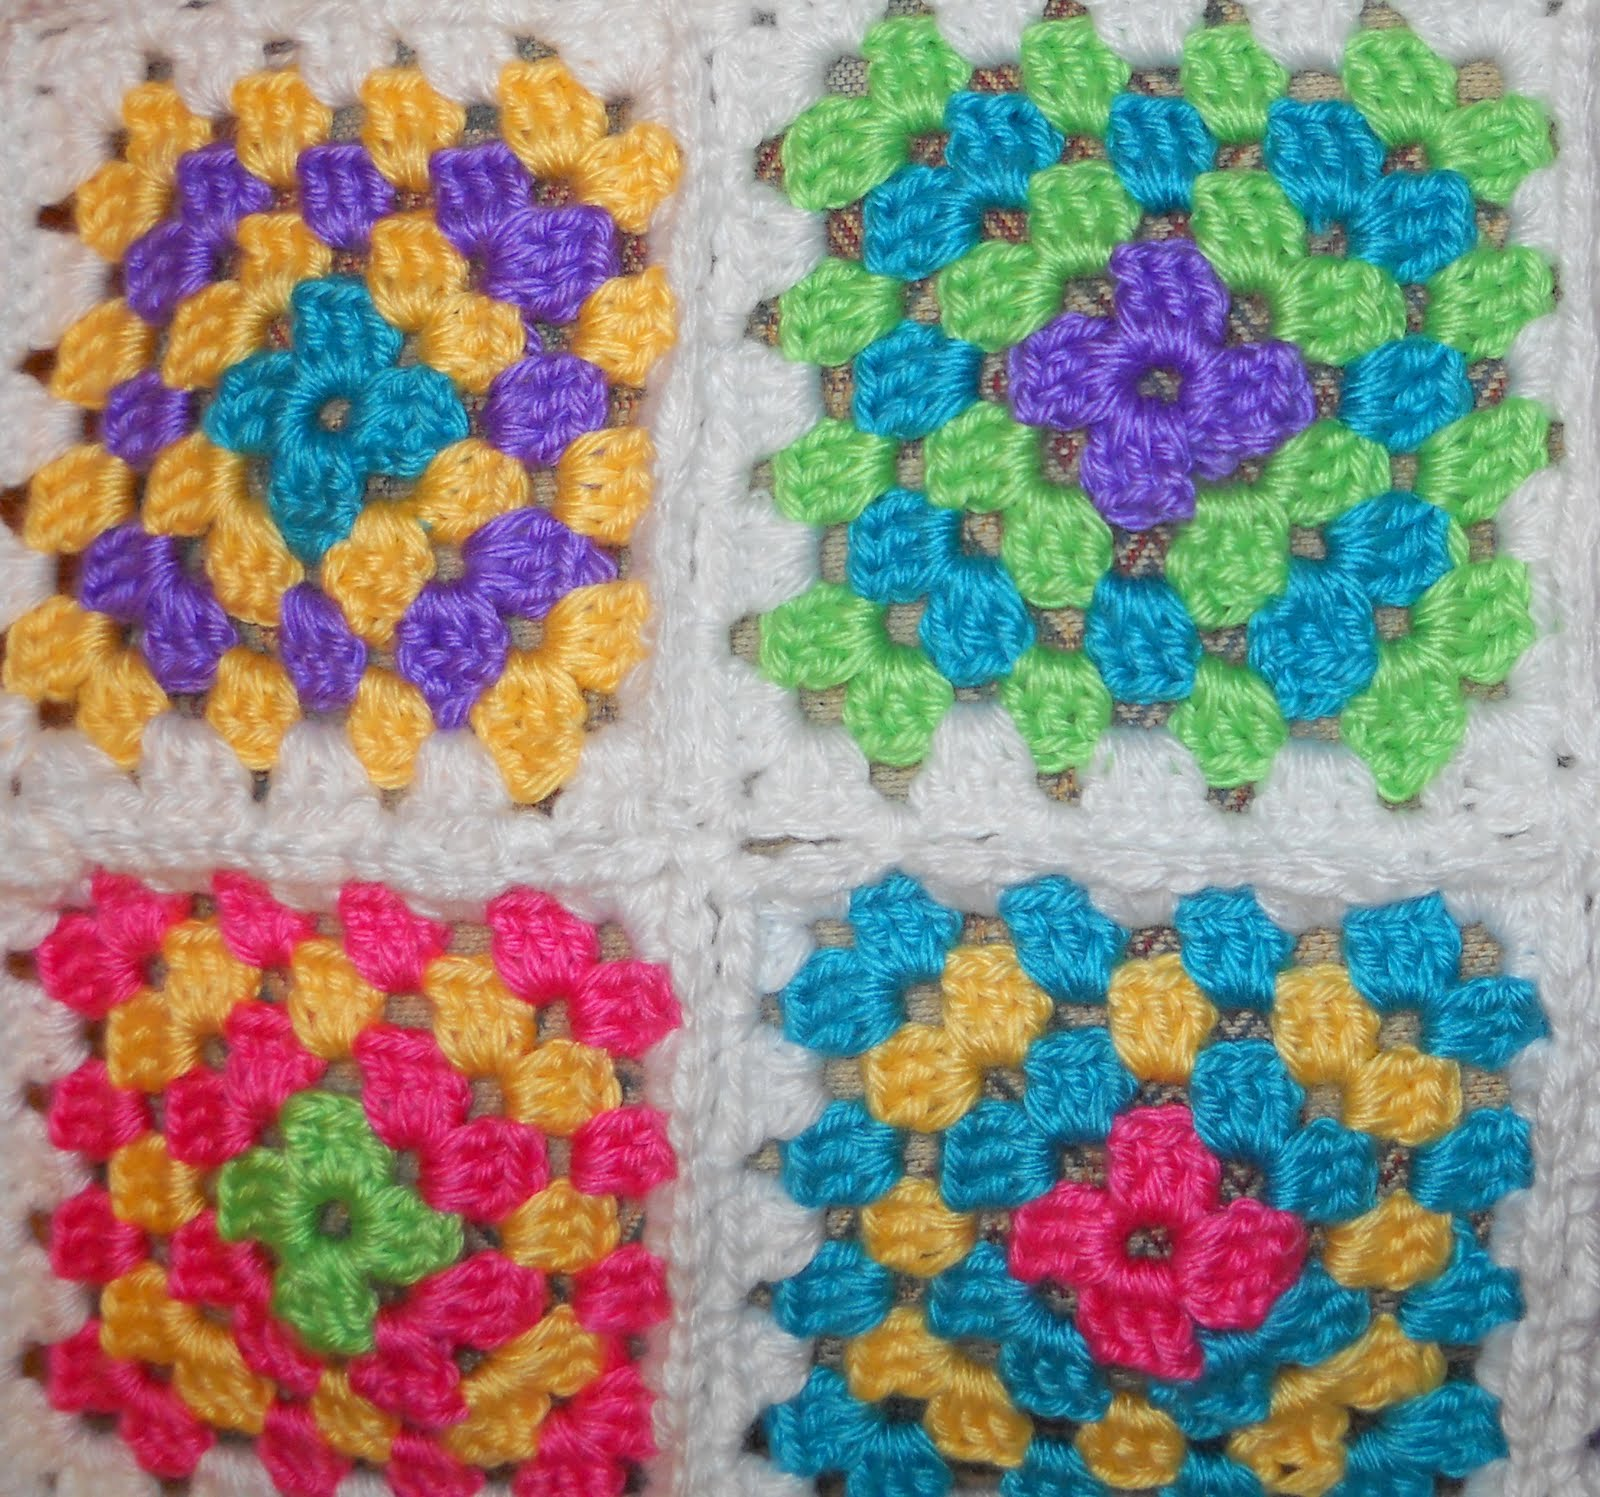 Crocheting Granny Squares : GRANNY SQUARES CROCHET PATTERN - Easy Crochet Patterns